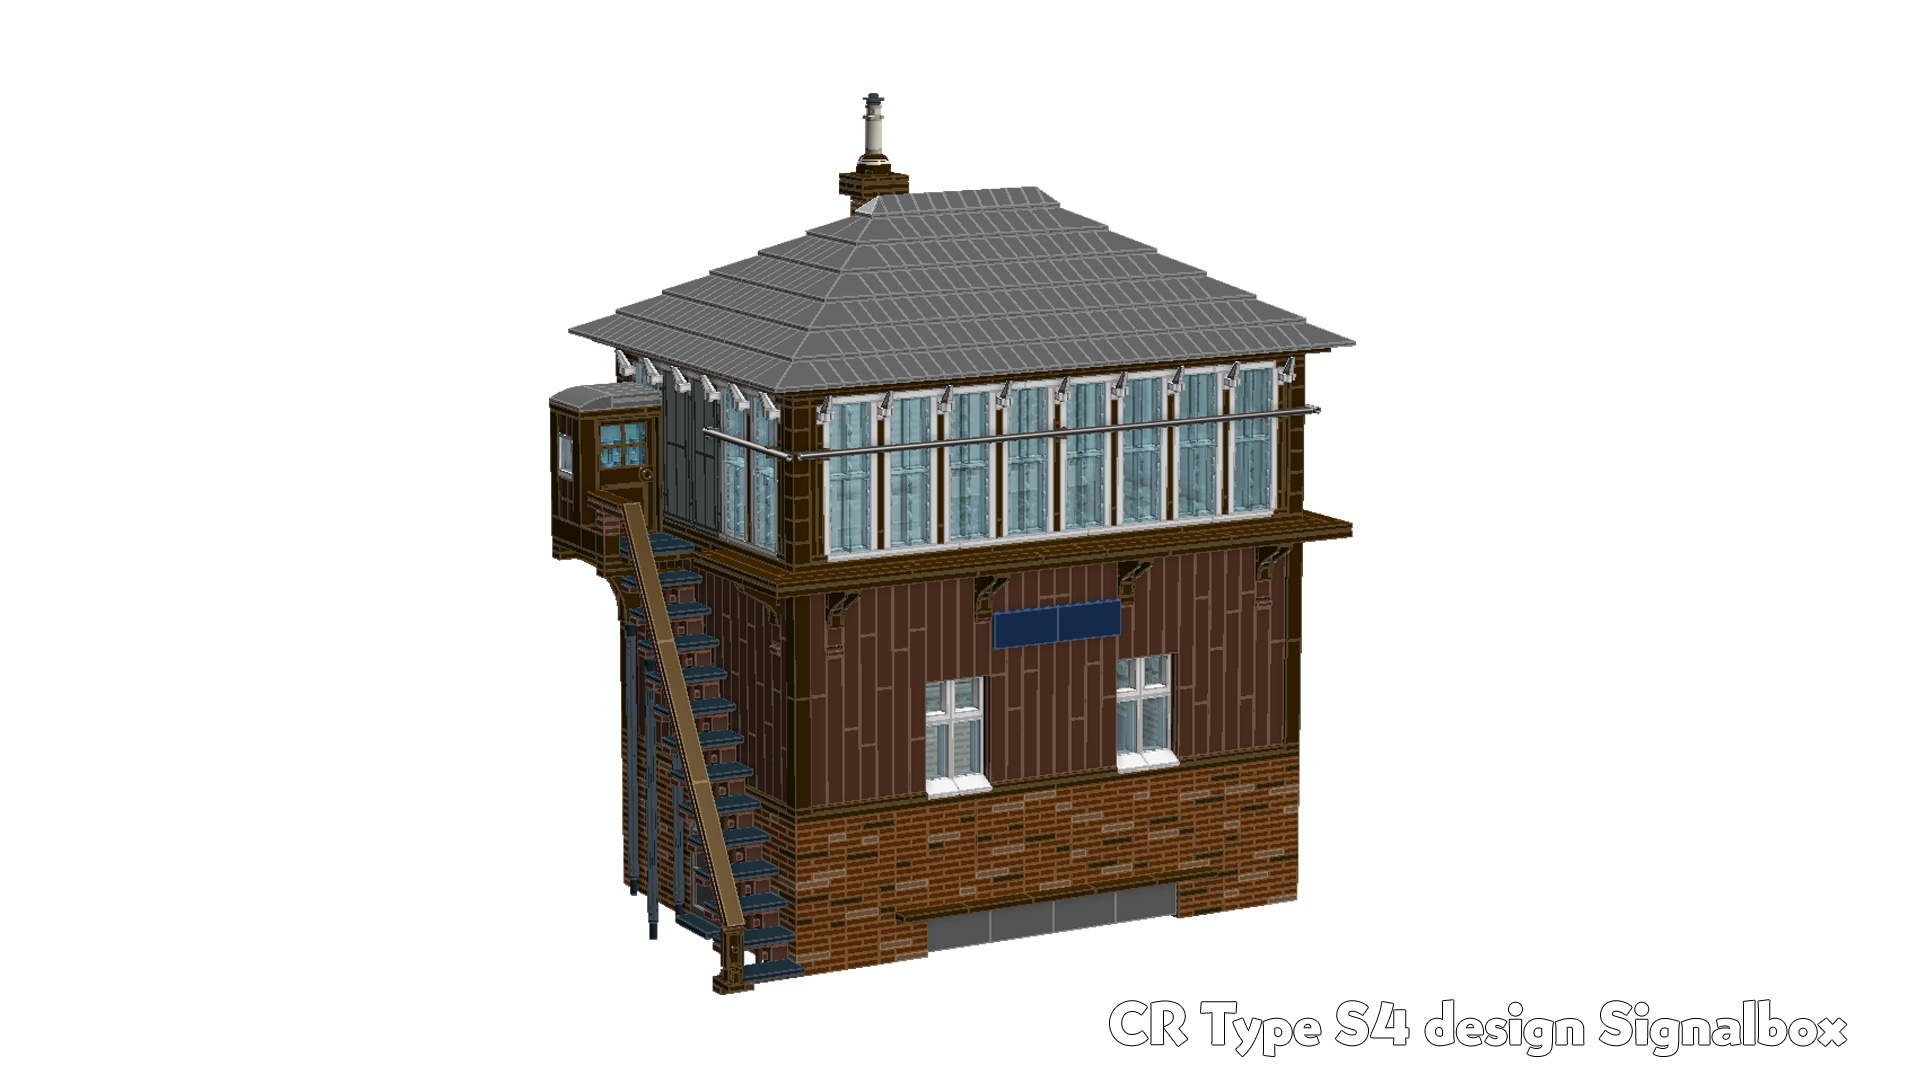 02b_signalbox_-_screenshot.jpg